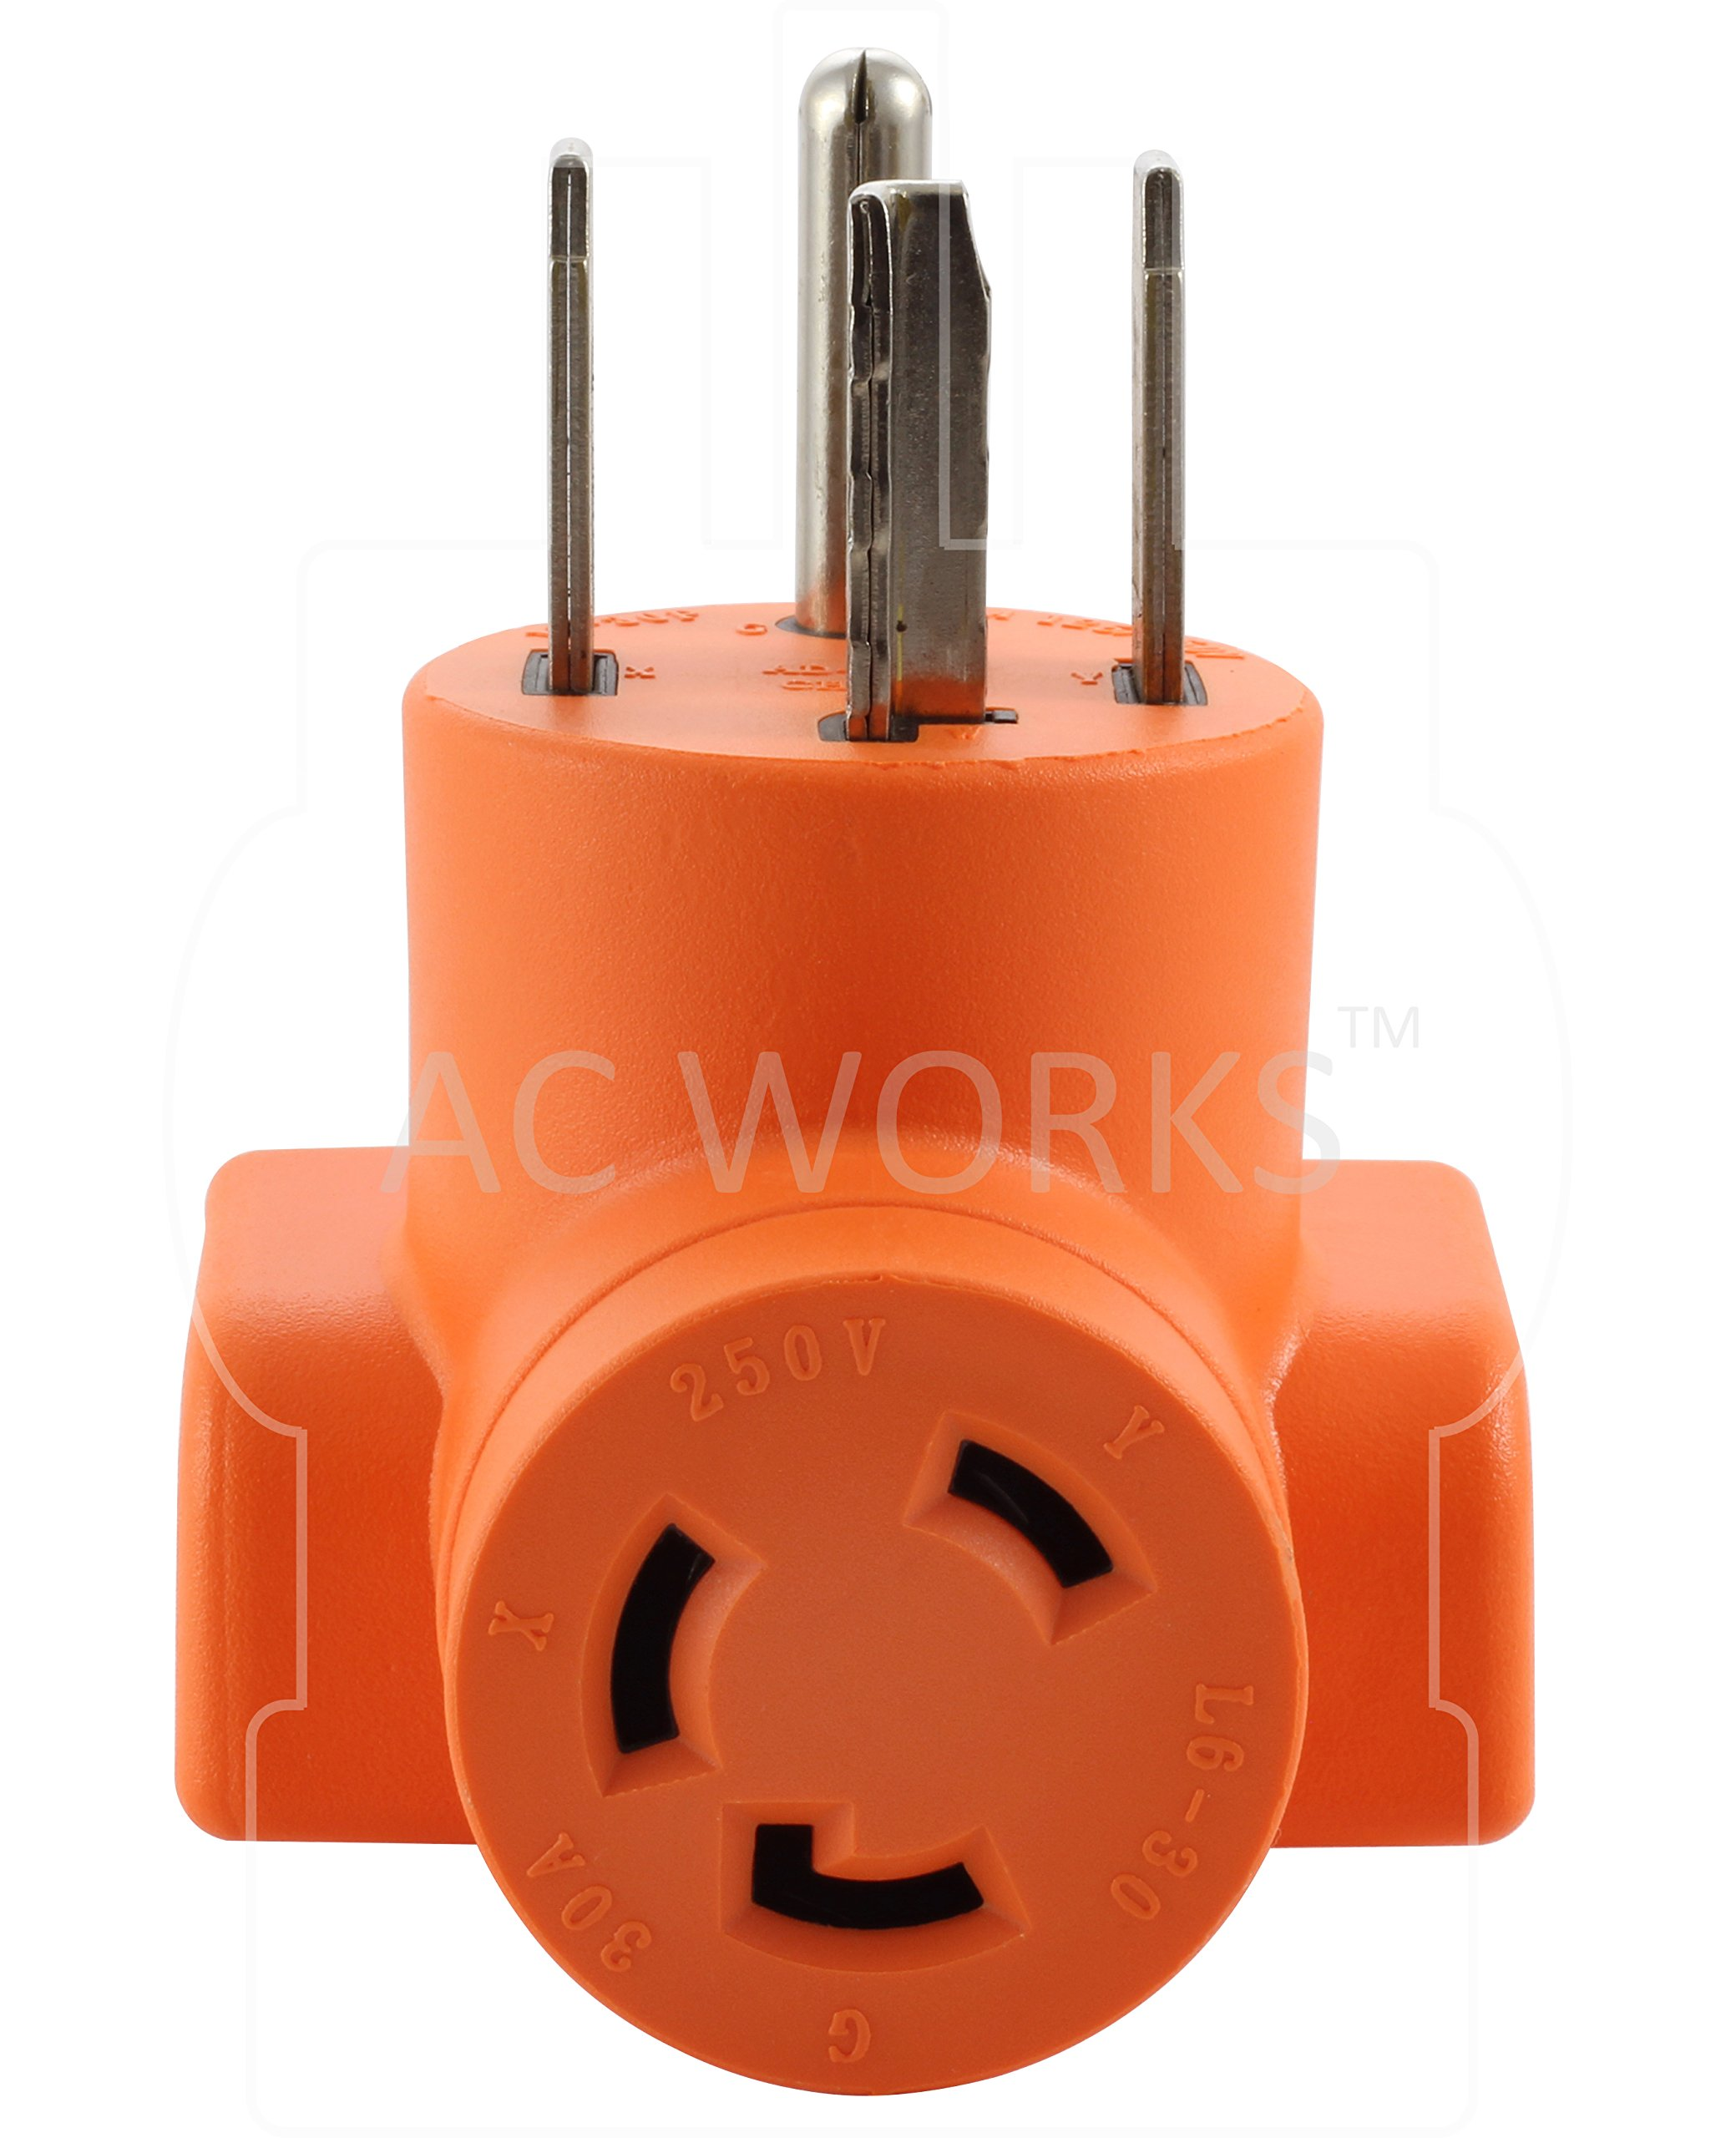 AC WORKS [AD1430L630] Plug Adapter NEMA 14-30P 4-Prong 30Amp Dryer Outlet to L6-30R 30Amp 250Volt Locking Female Connector by AC WORKS (Image #4)